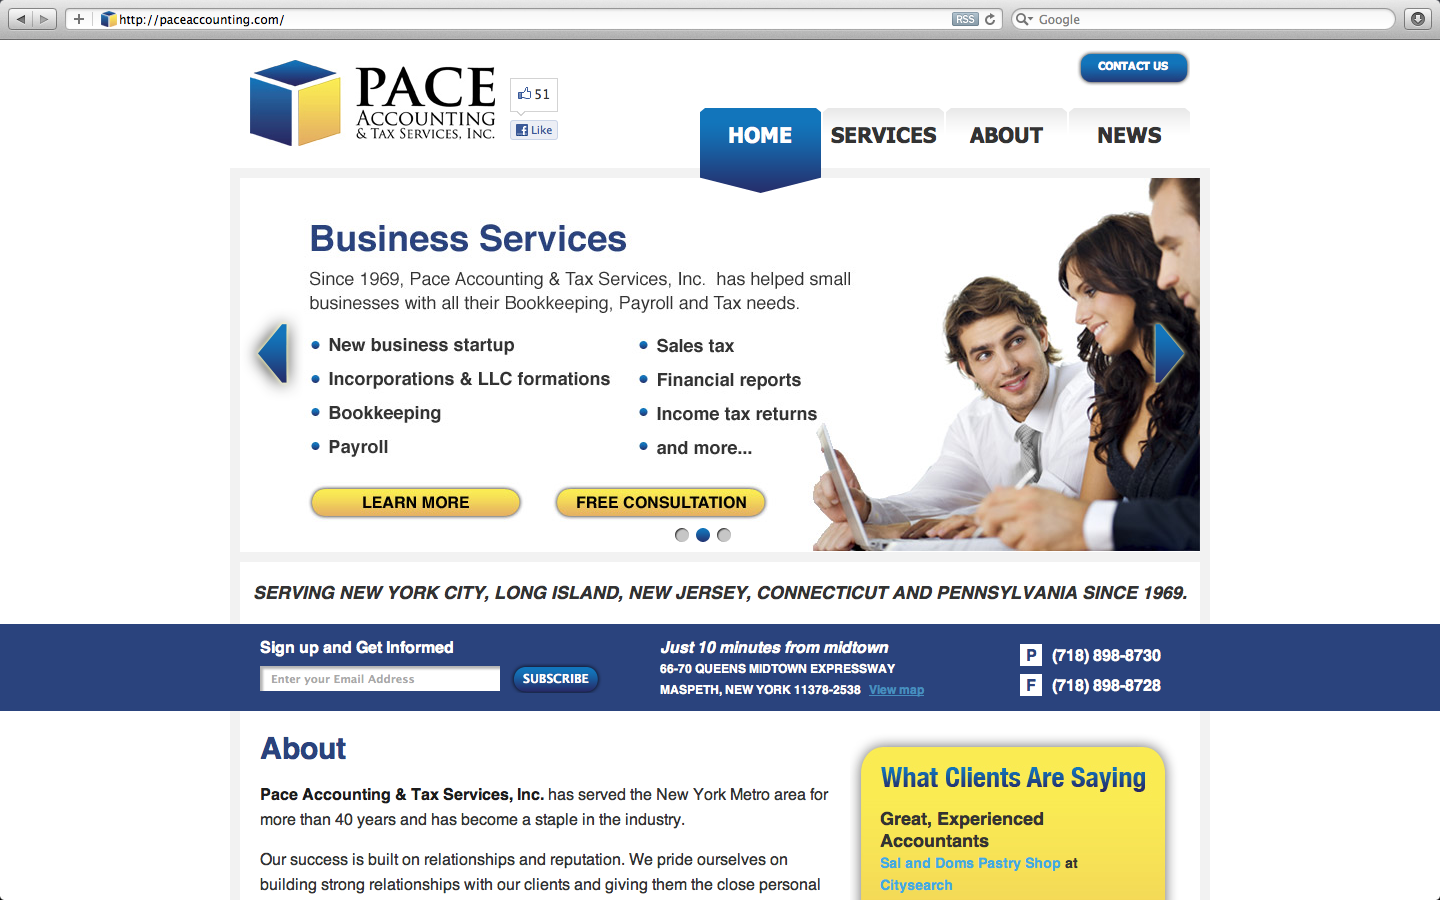 Paceaccounting.com